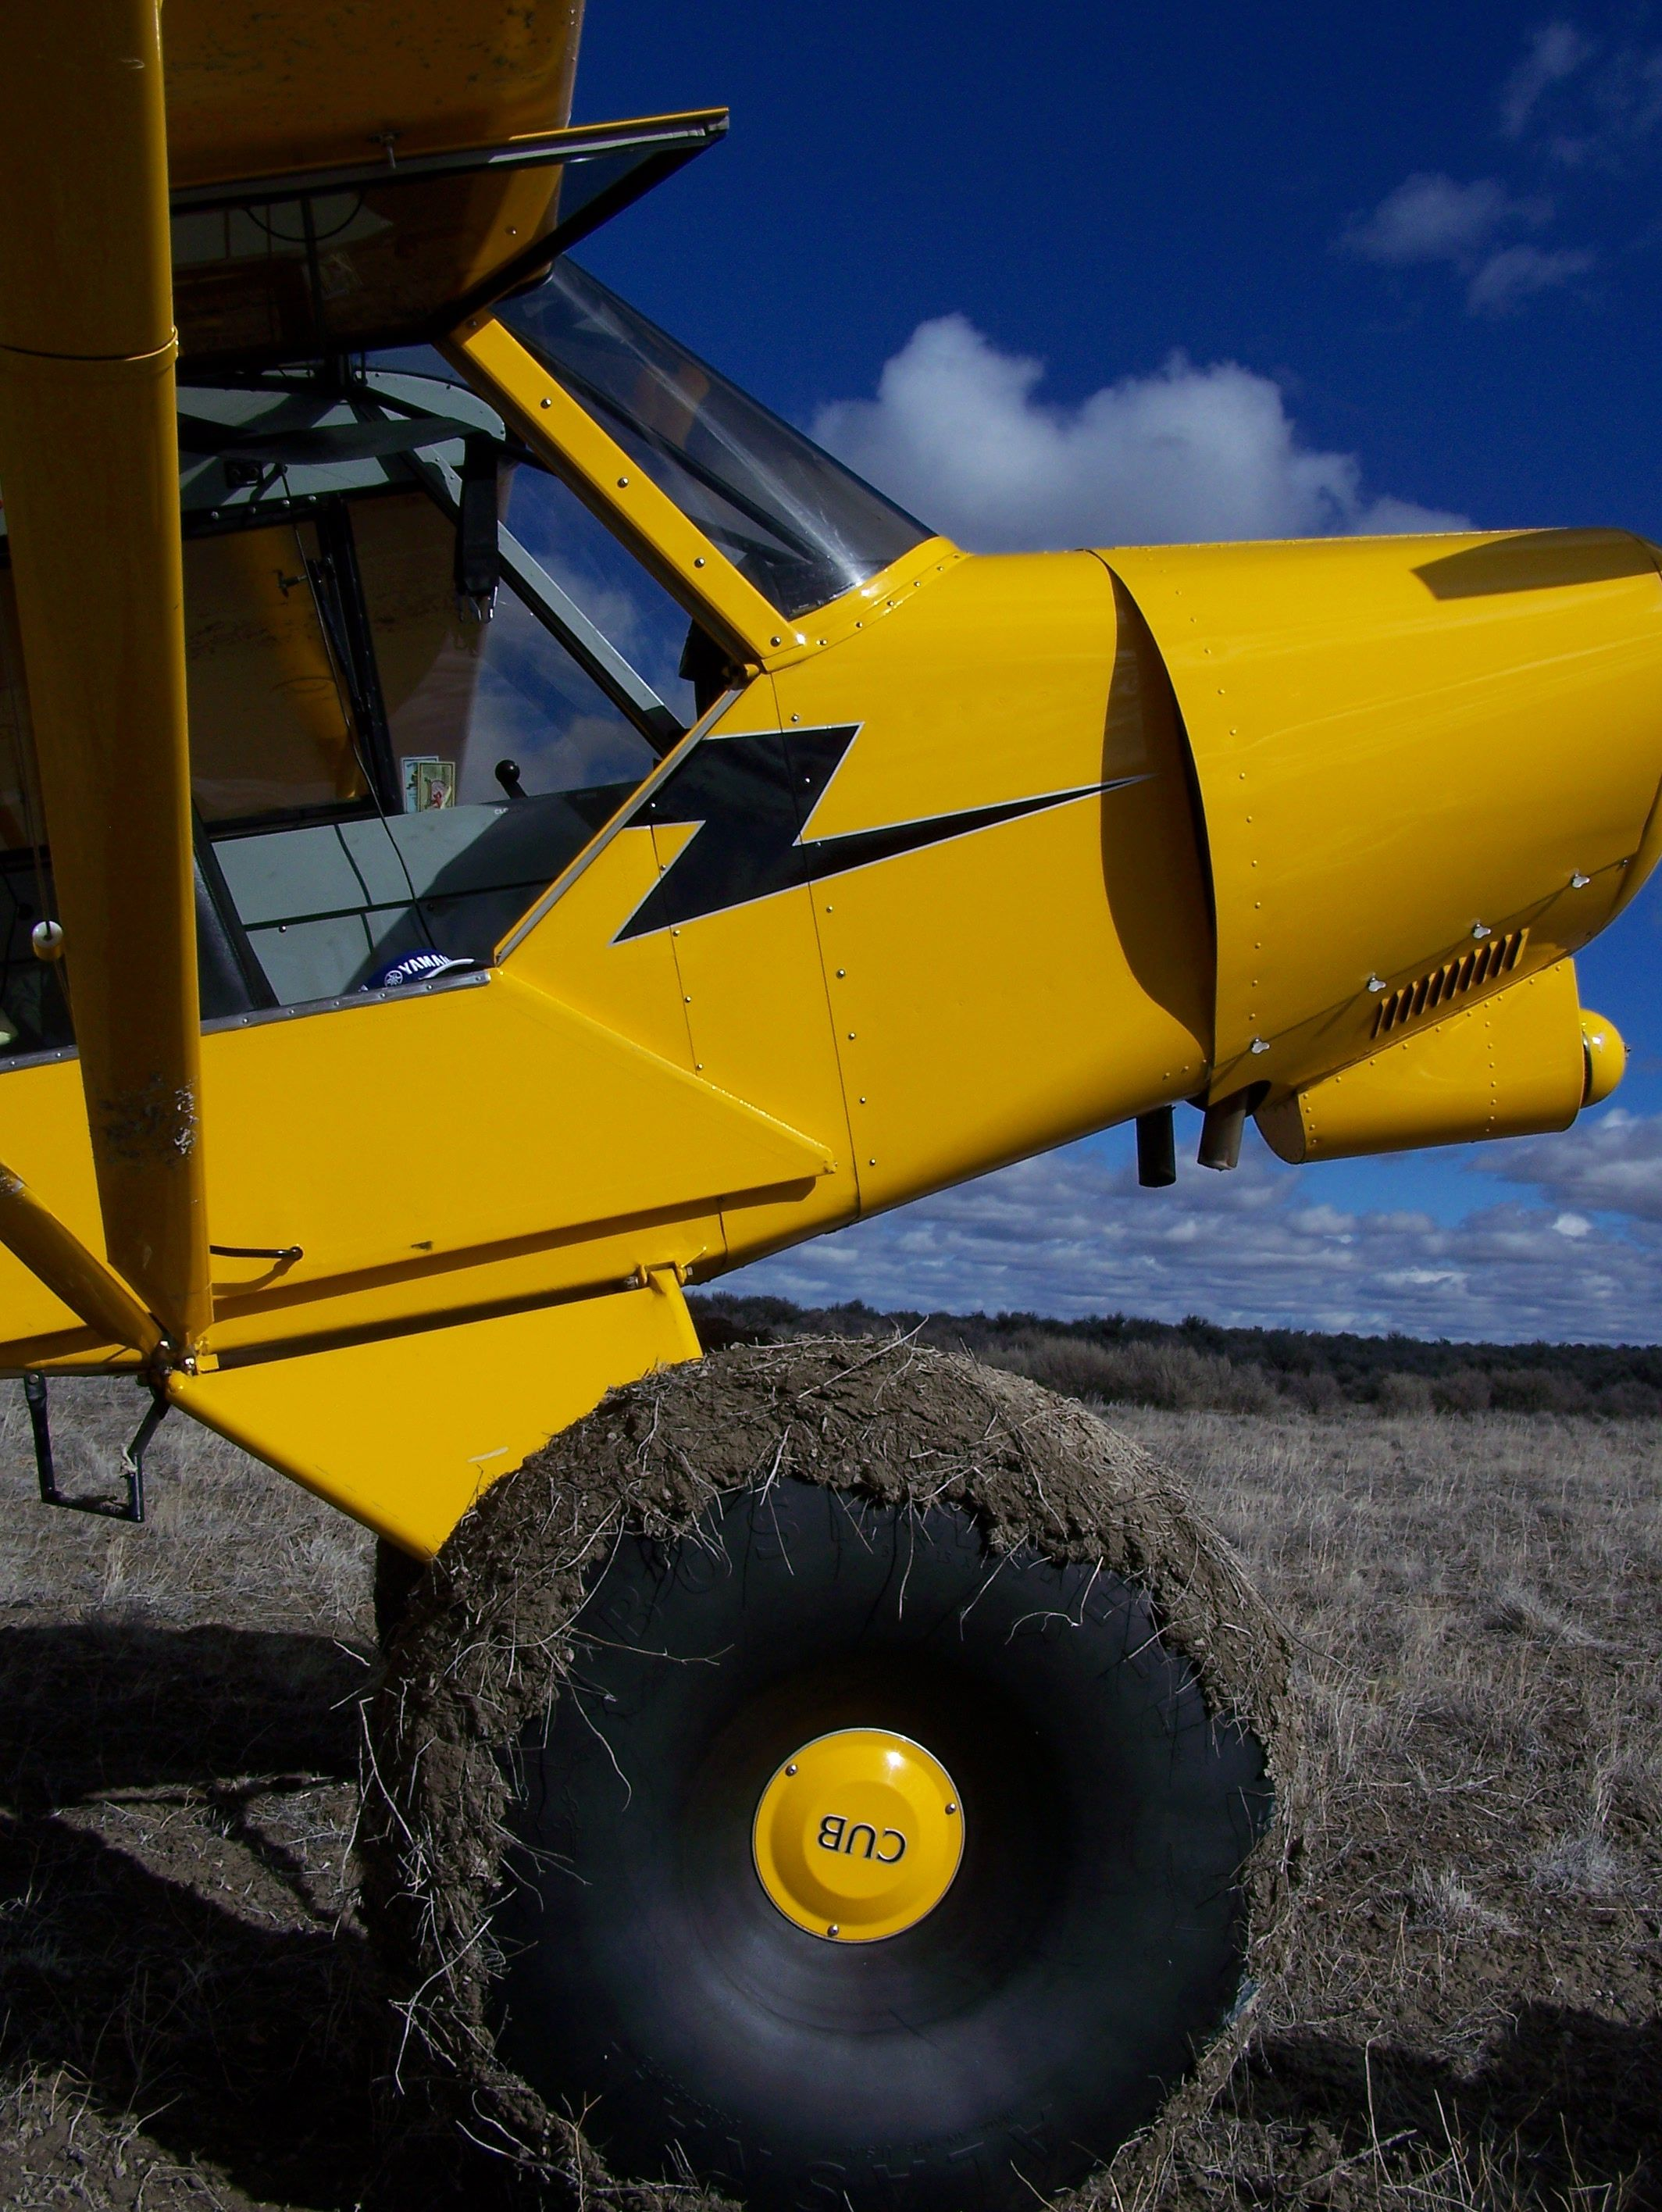 That S Not A Tire This Is A Tire Bush Plane